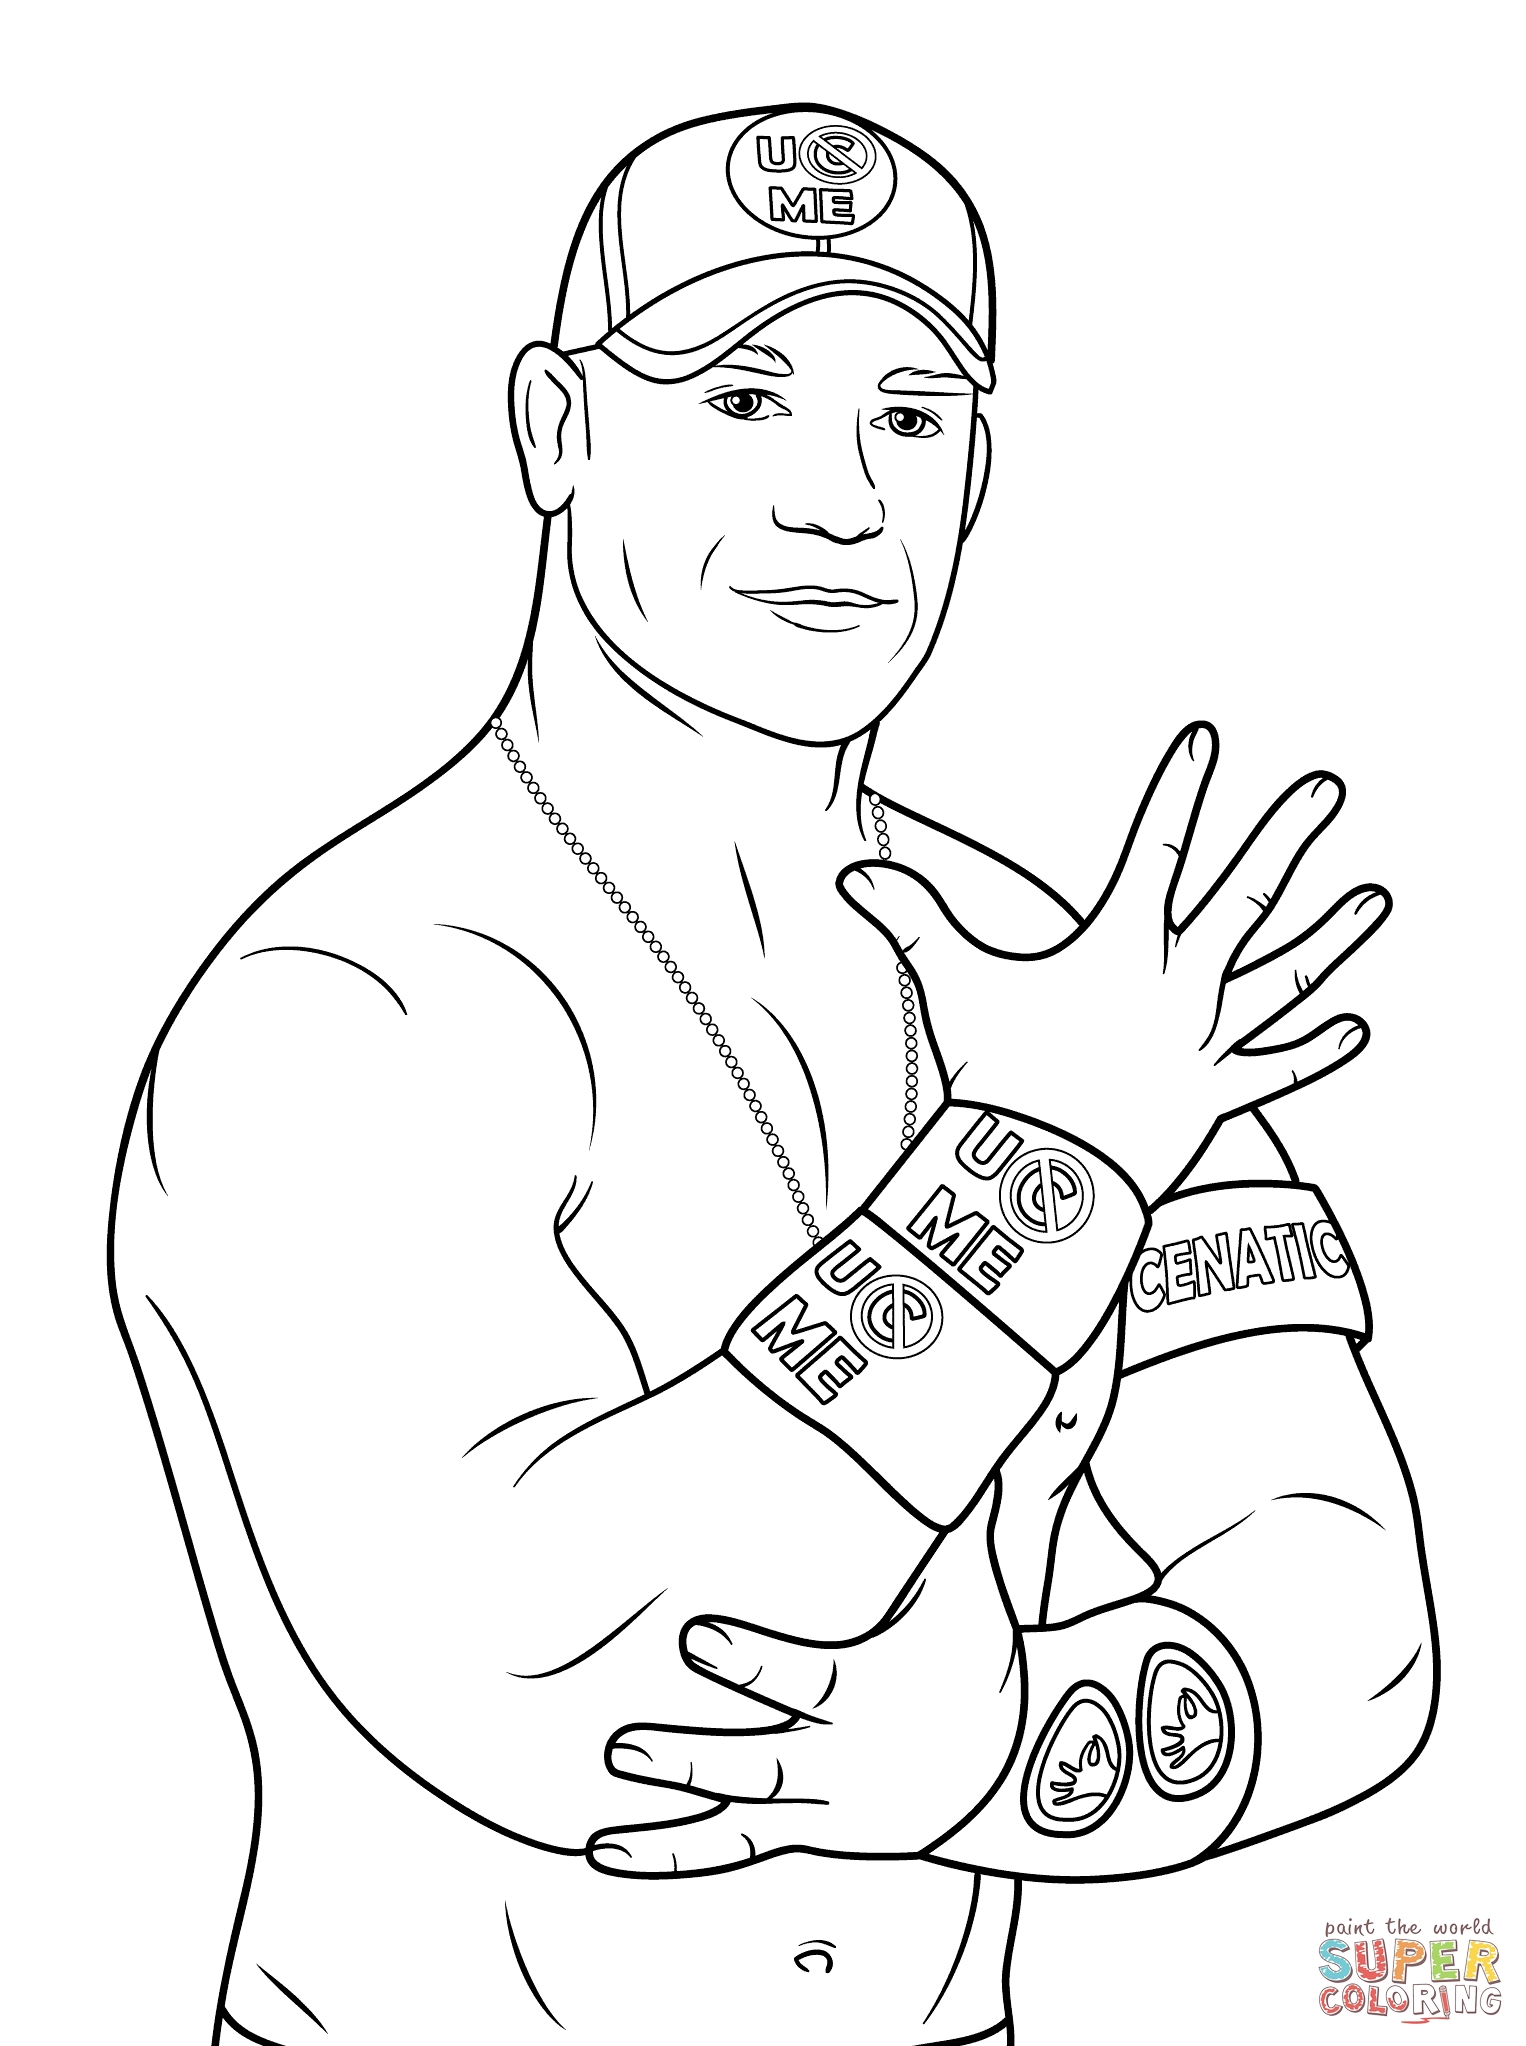 John Cena Coloring Pages - John Cena Coloring Page